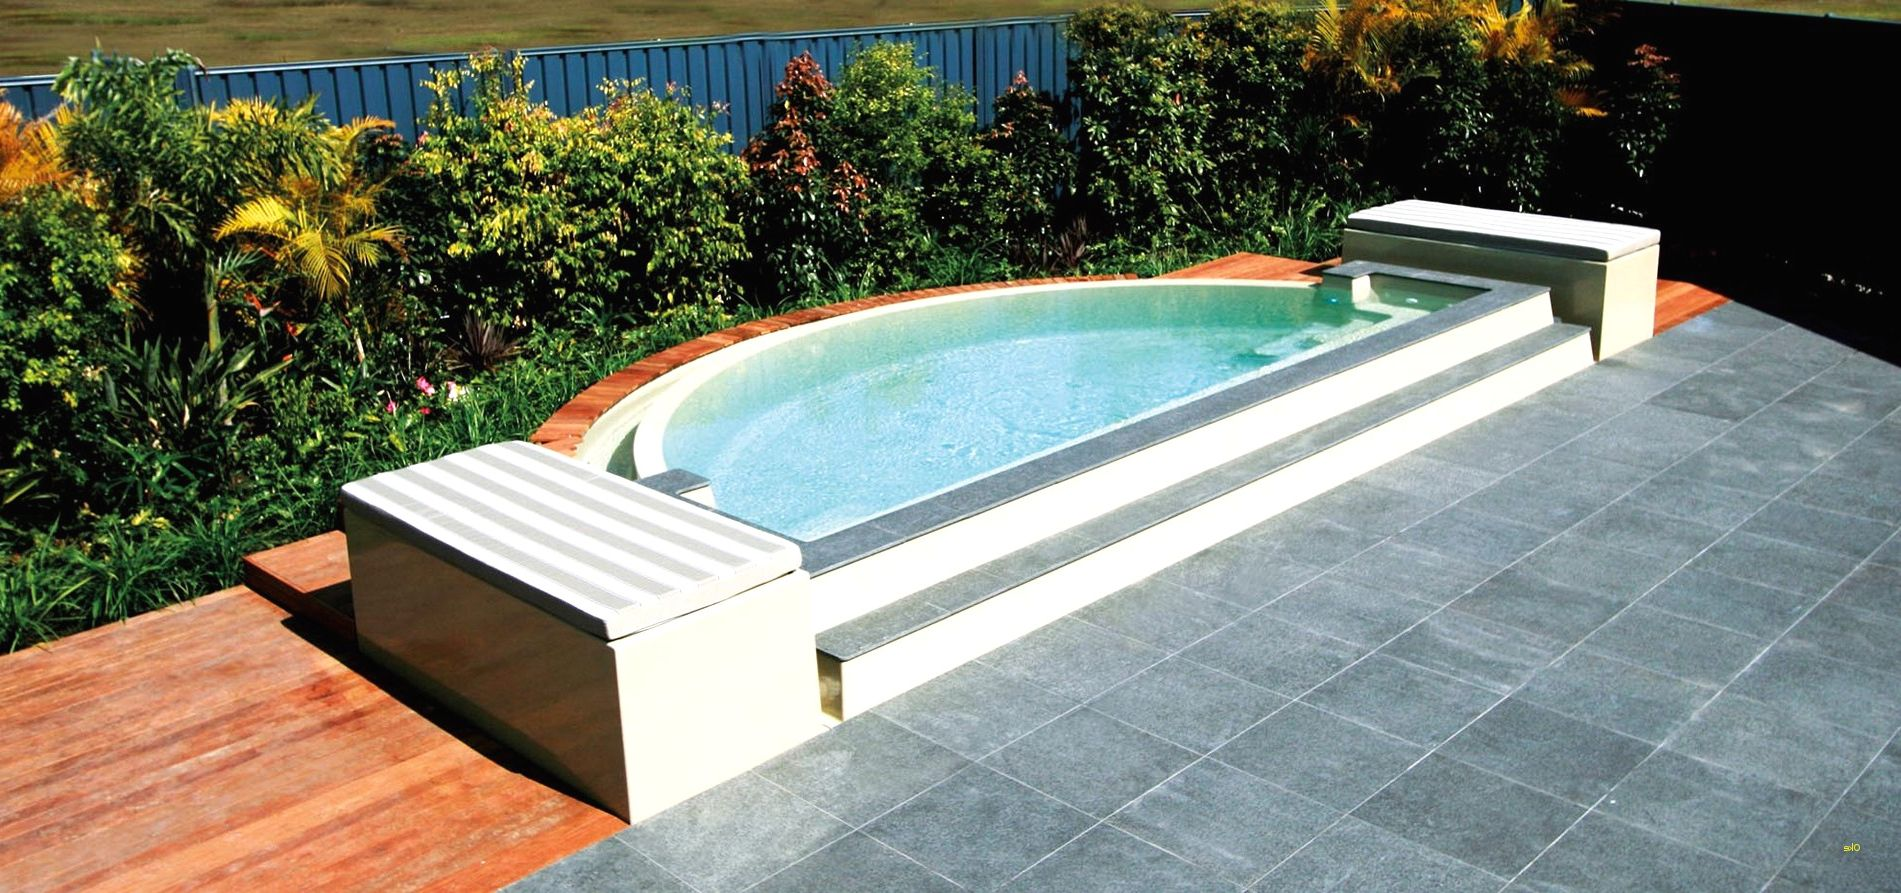 9 Inspiring Above Ground Pools For Small Backyards Collection